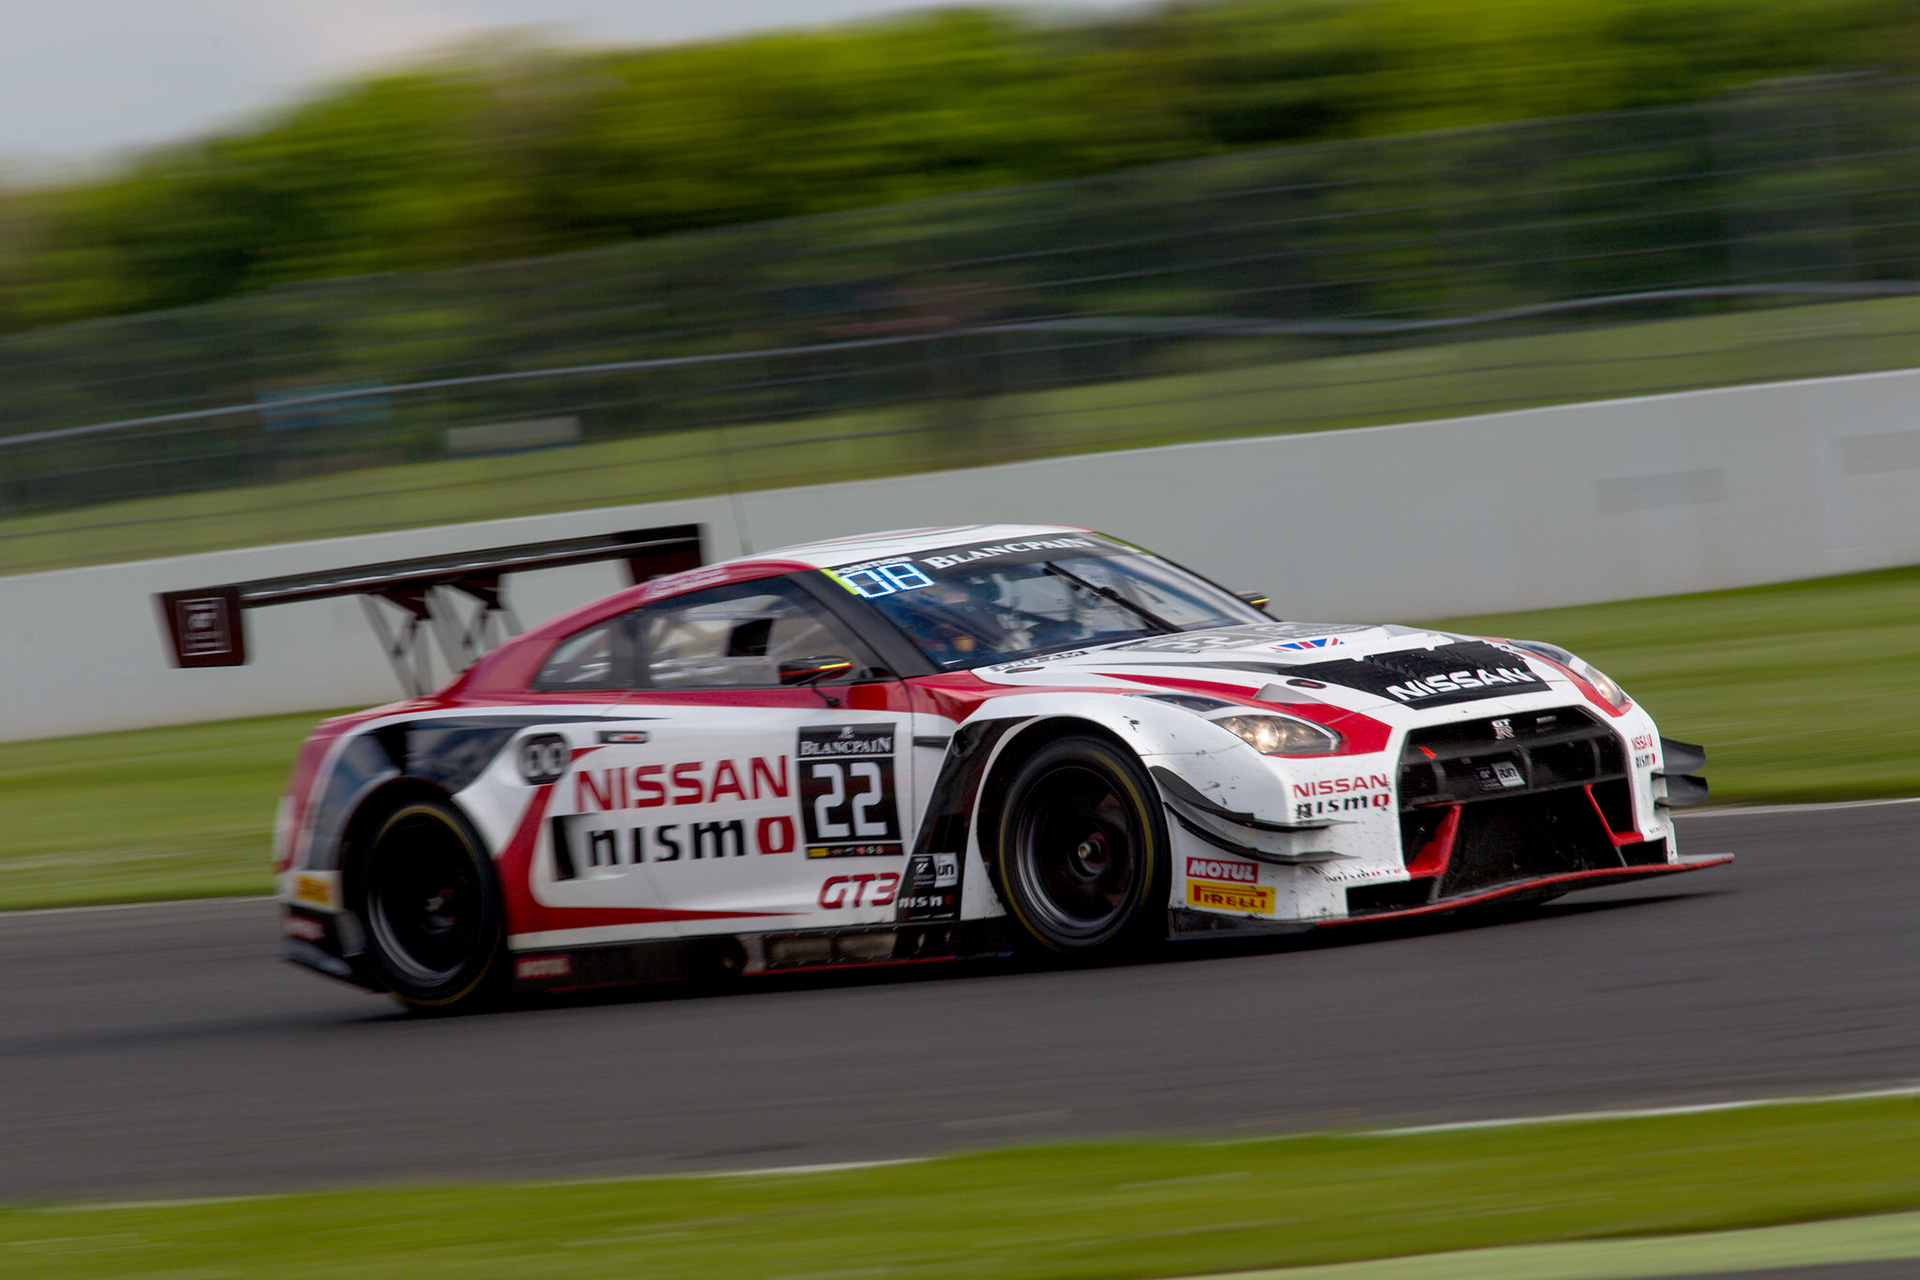 Six hours is double the usual length of a Blancpain Endurance Cup race.